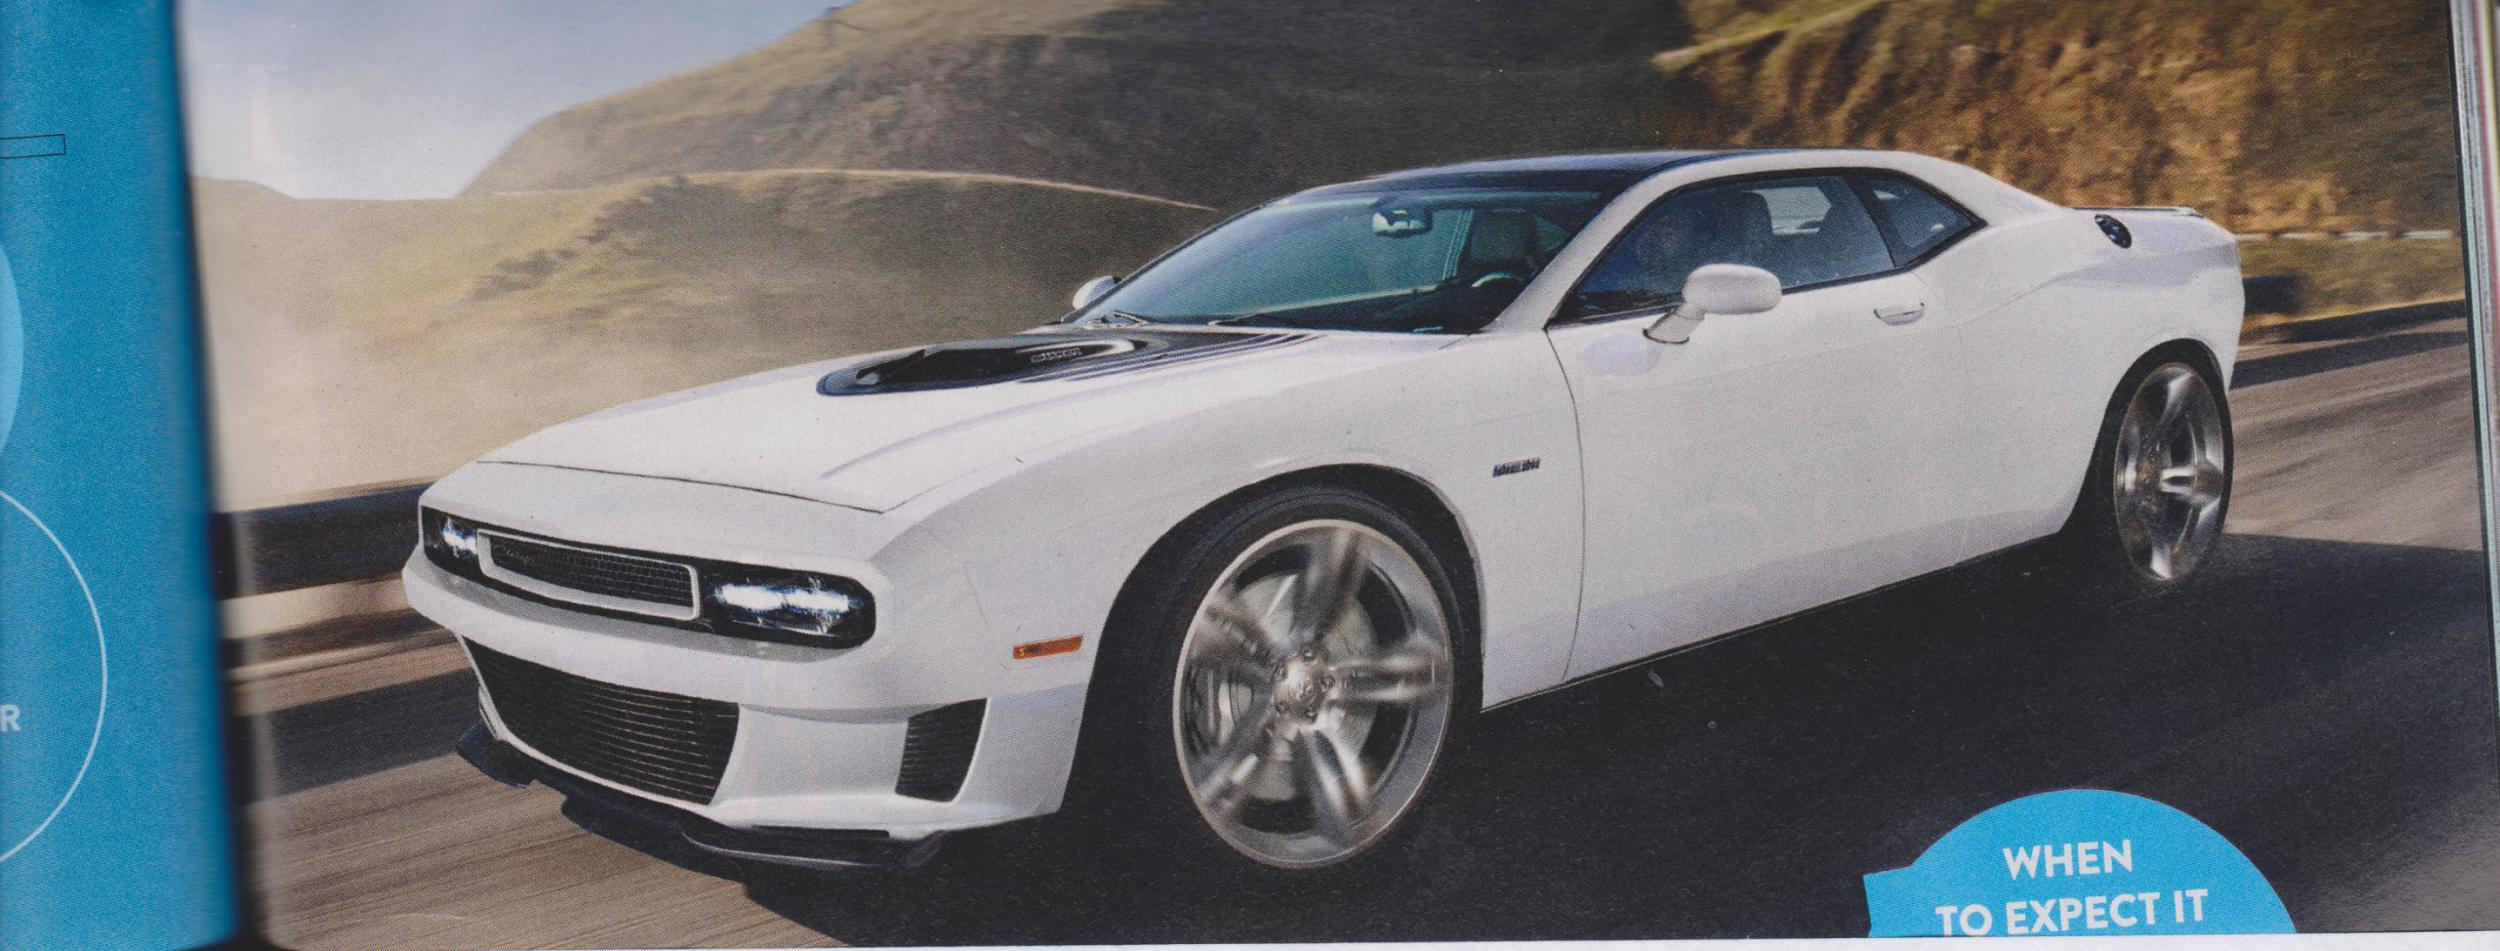 Dodge Challenger Forum: Challenger & SRT8 Forums - Popular Photos